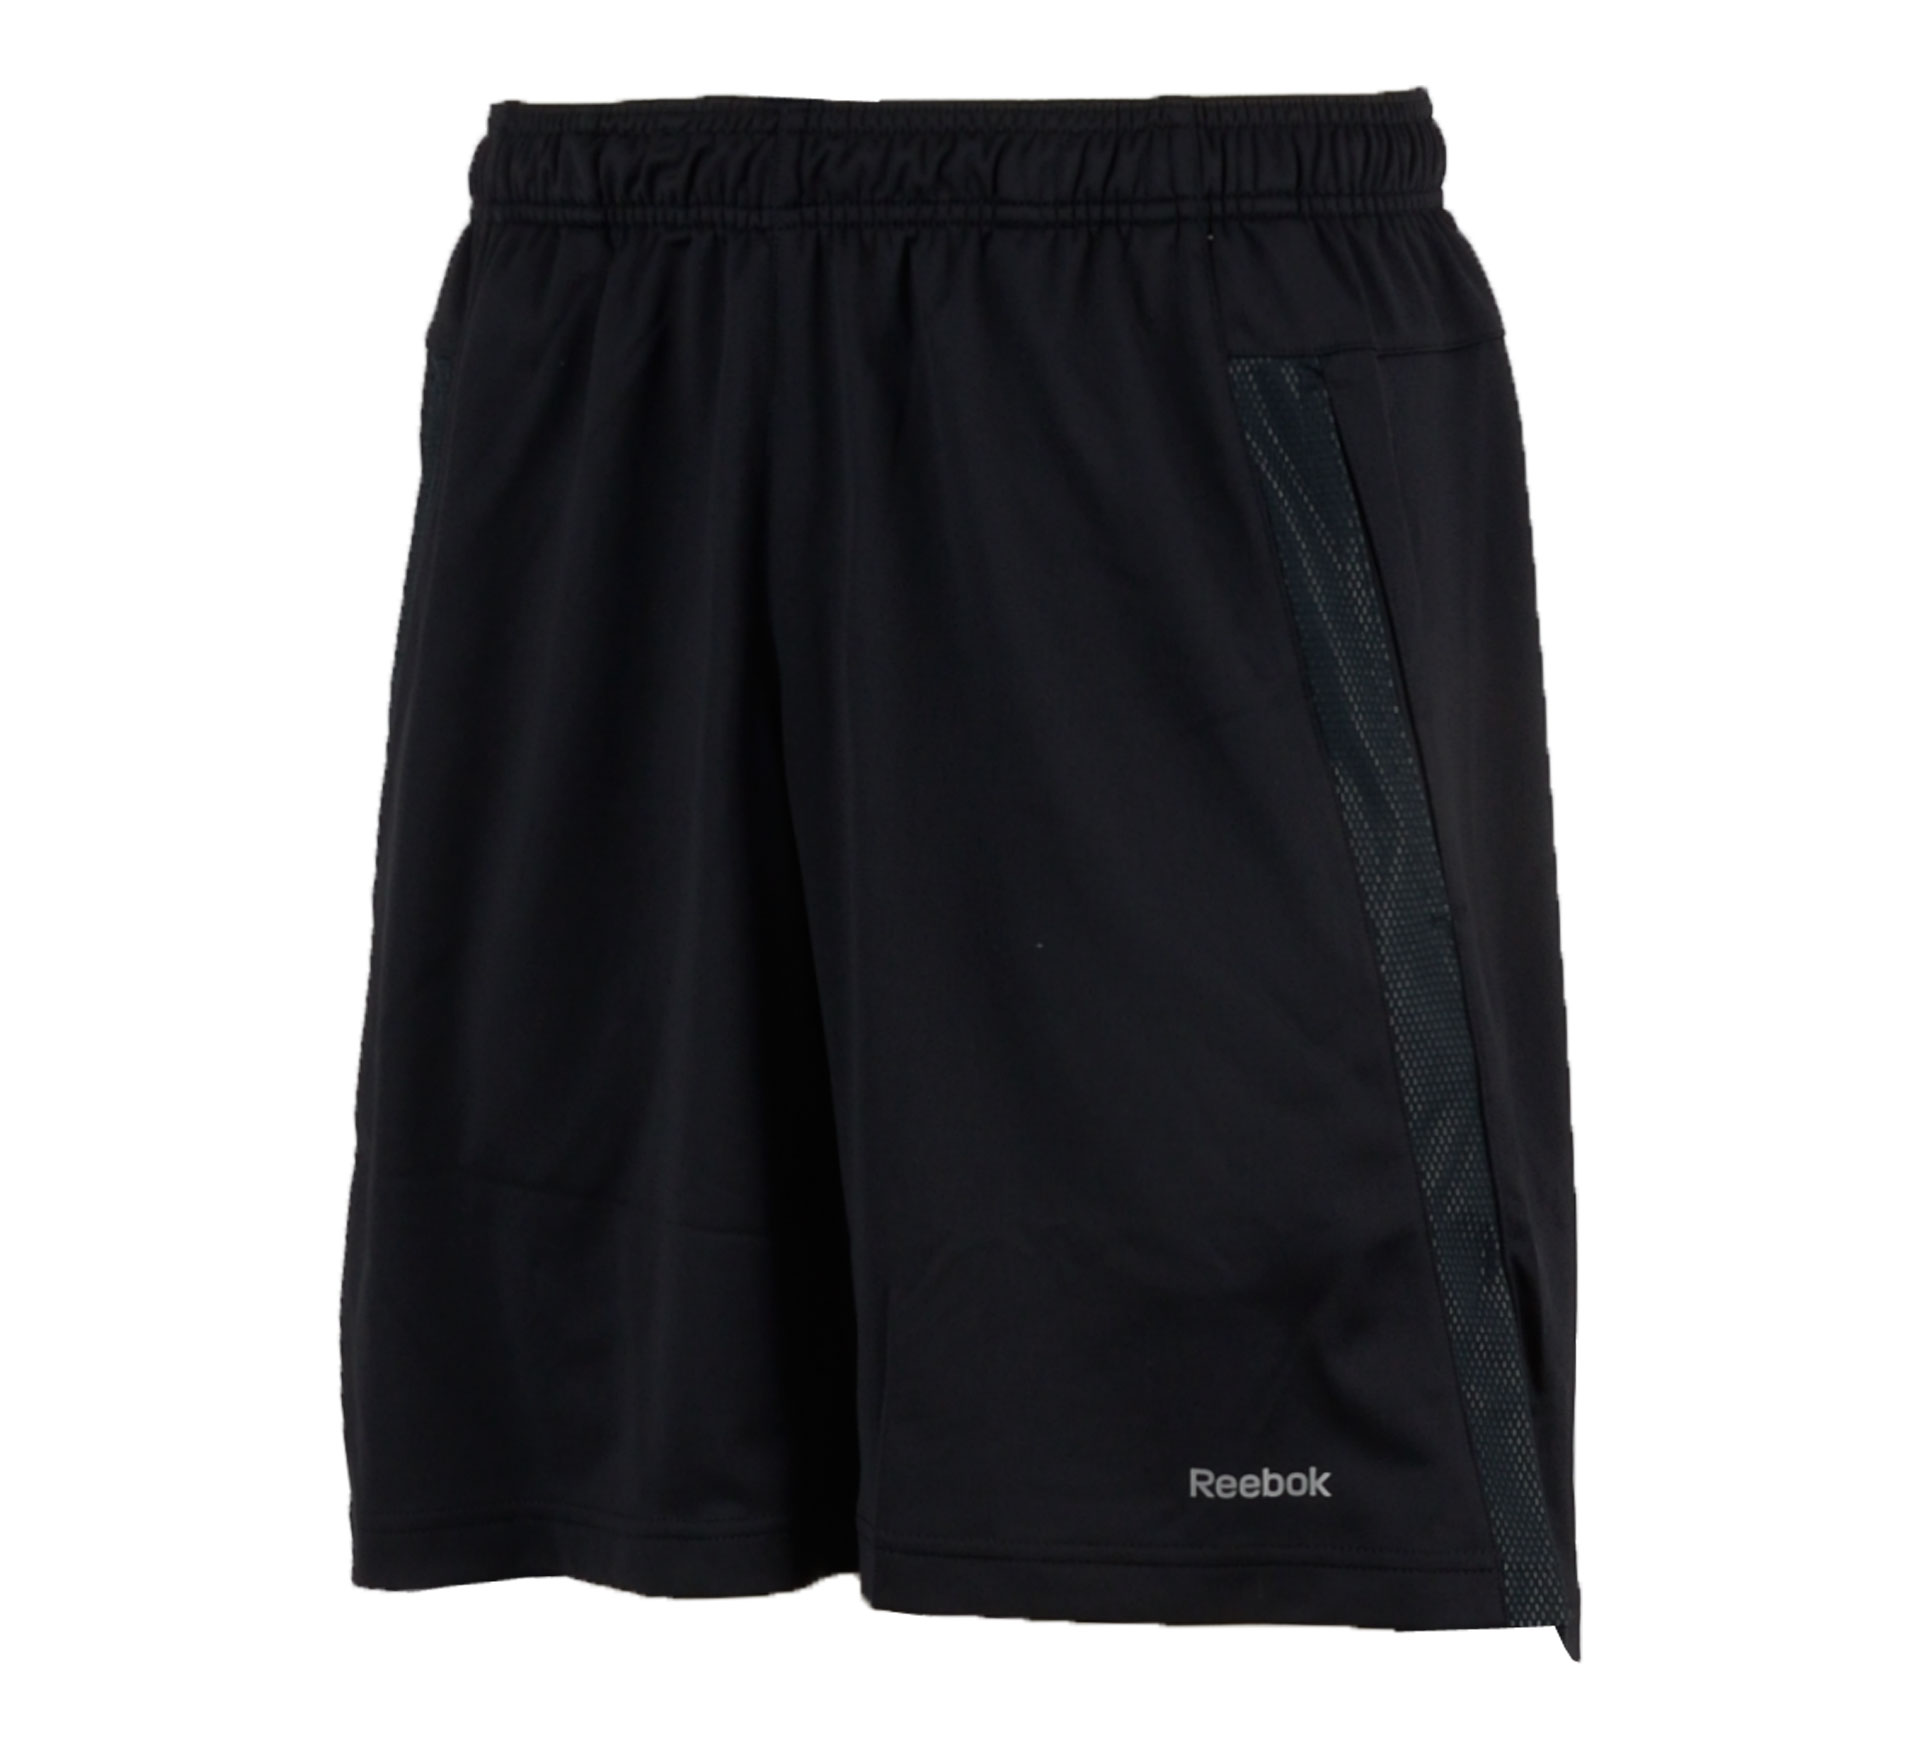 Reebok Short Heren zwart